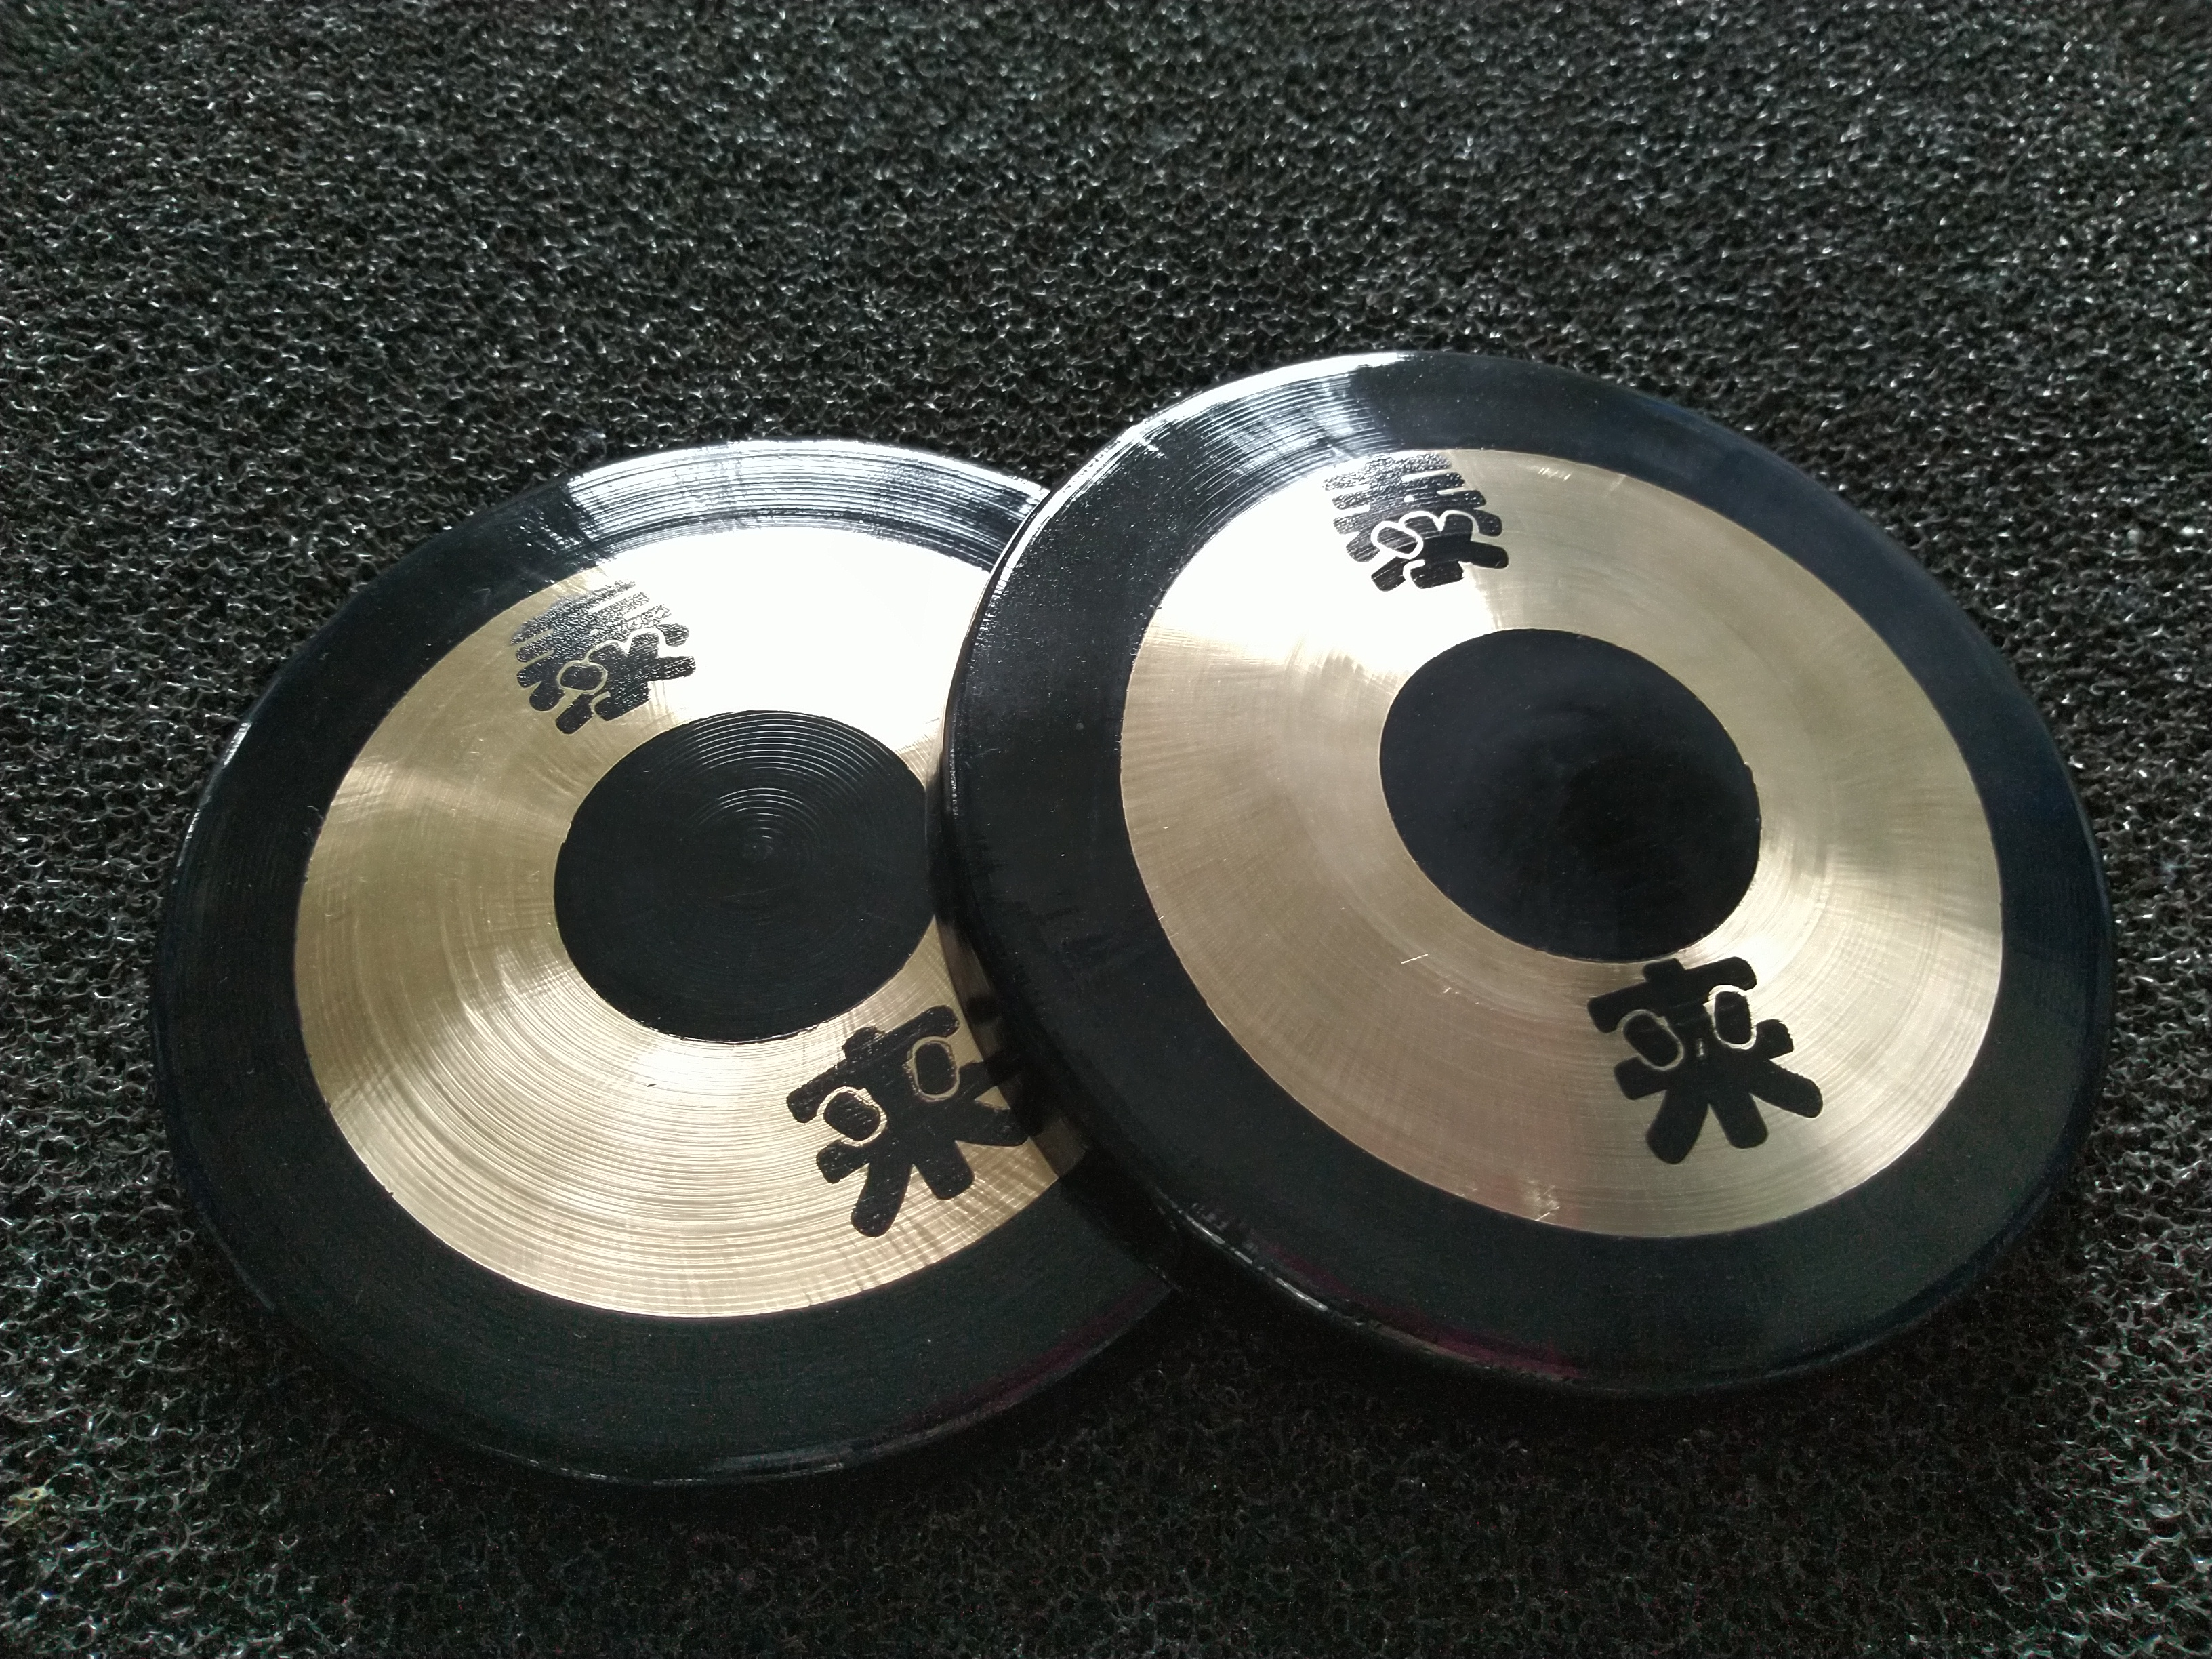 B20 Metal Gongs